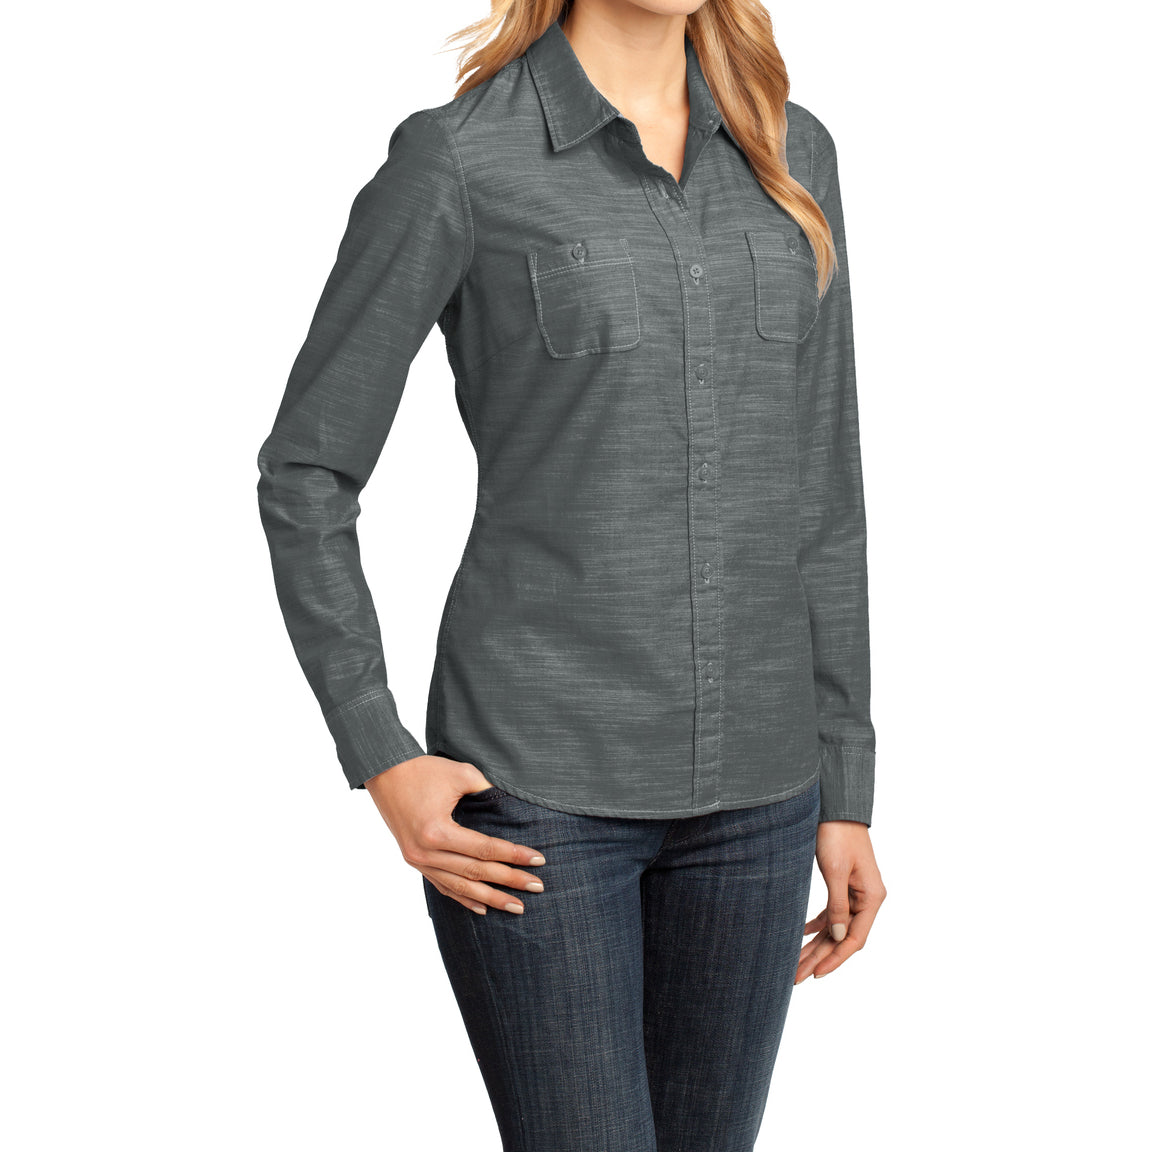 Womens Long Sleeve Washed Woven Shirt - Grey - Side